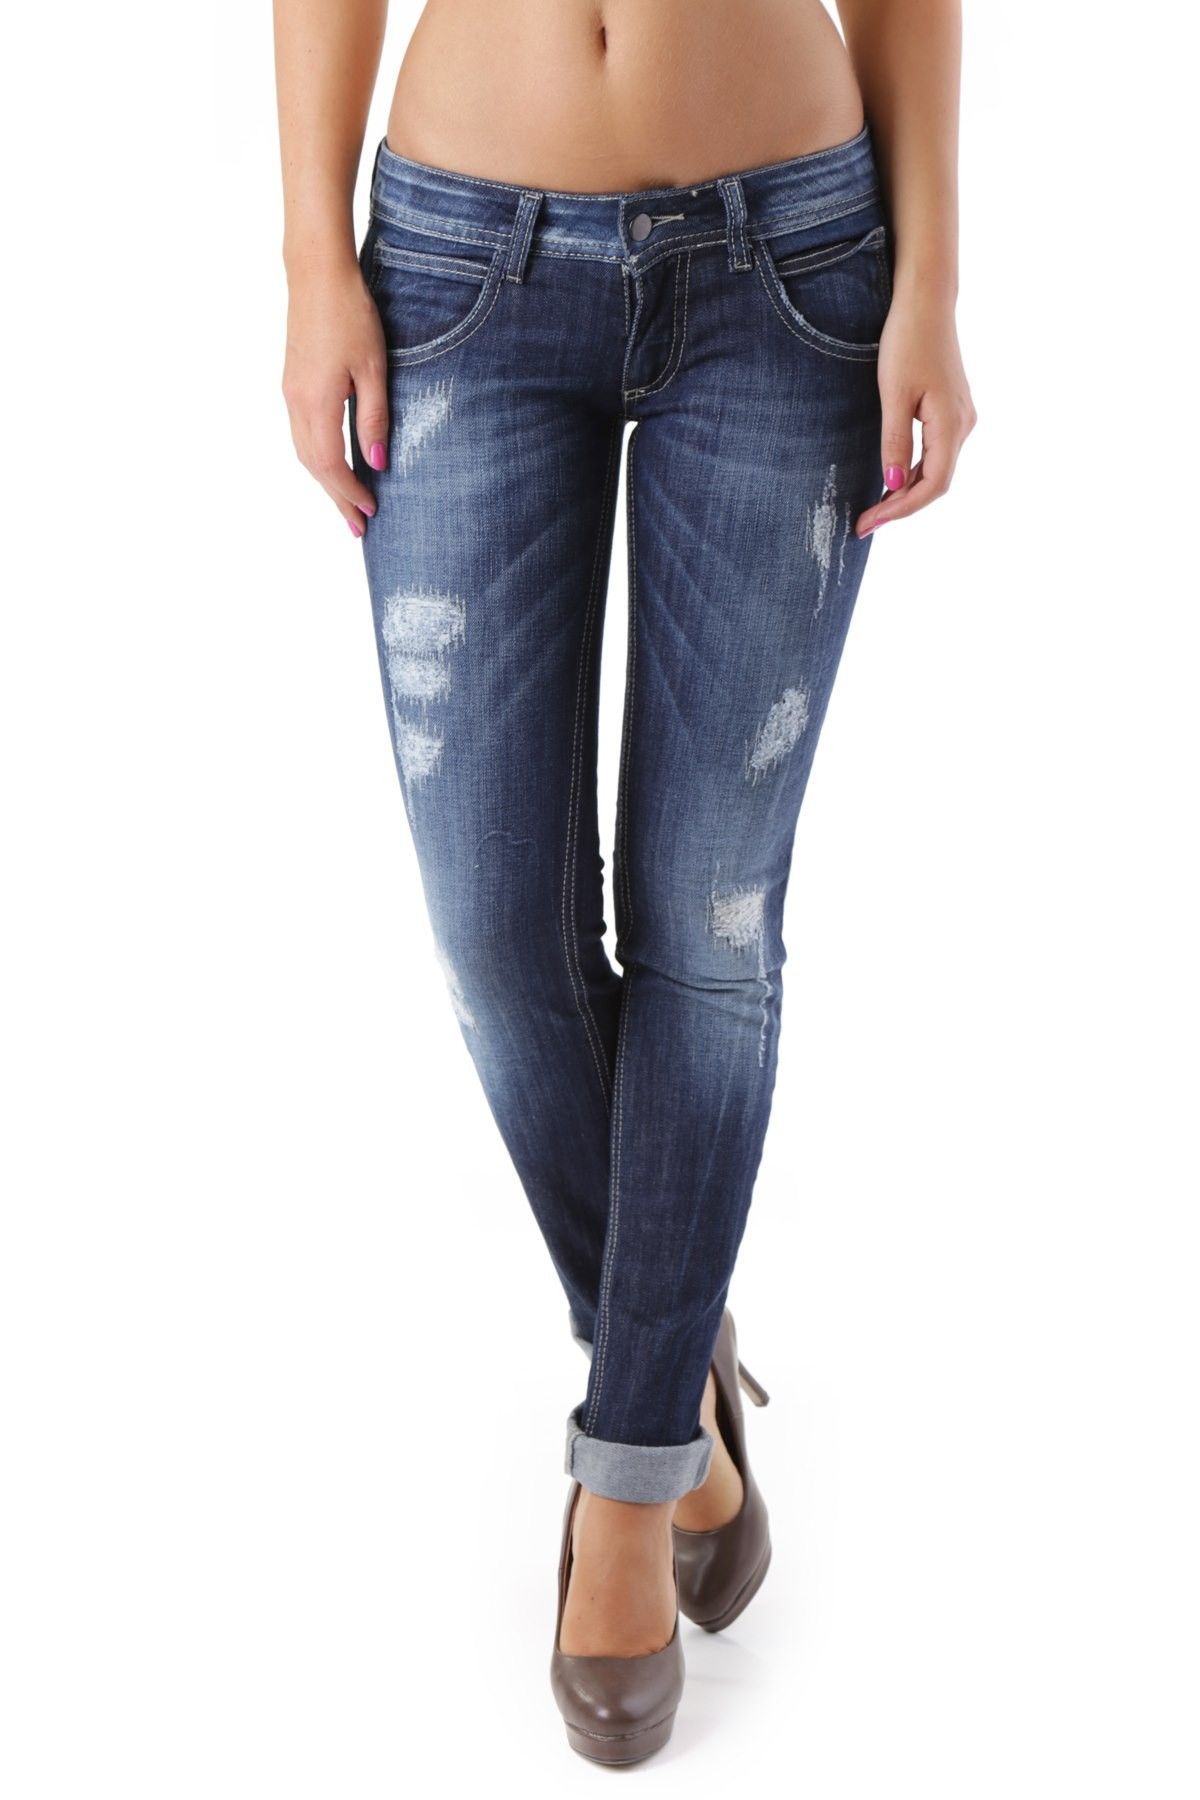 525 Women's Jeans In Blue